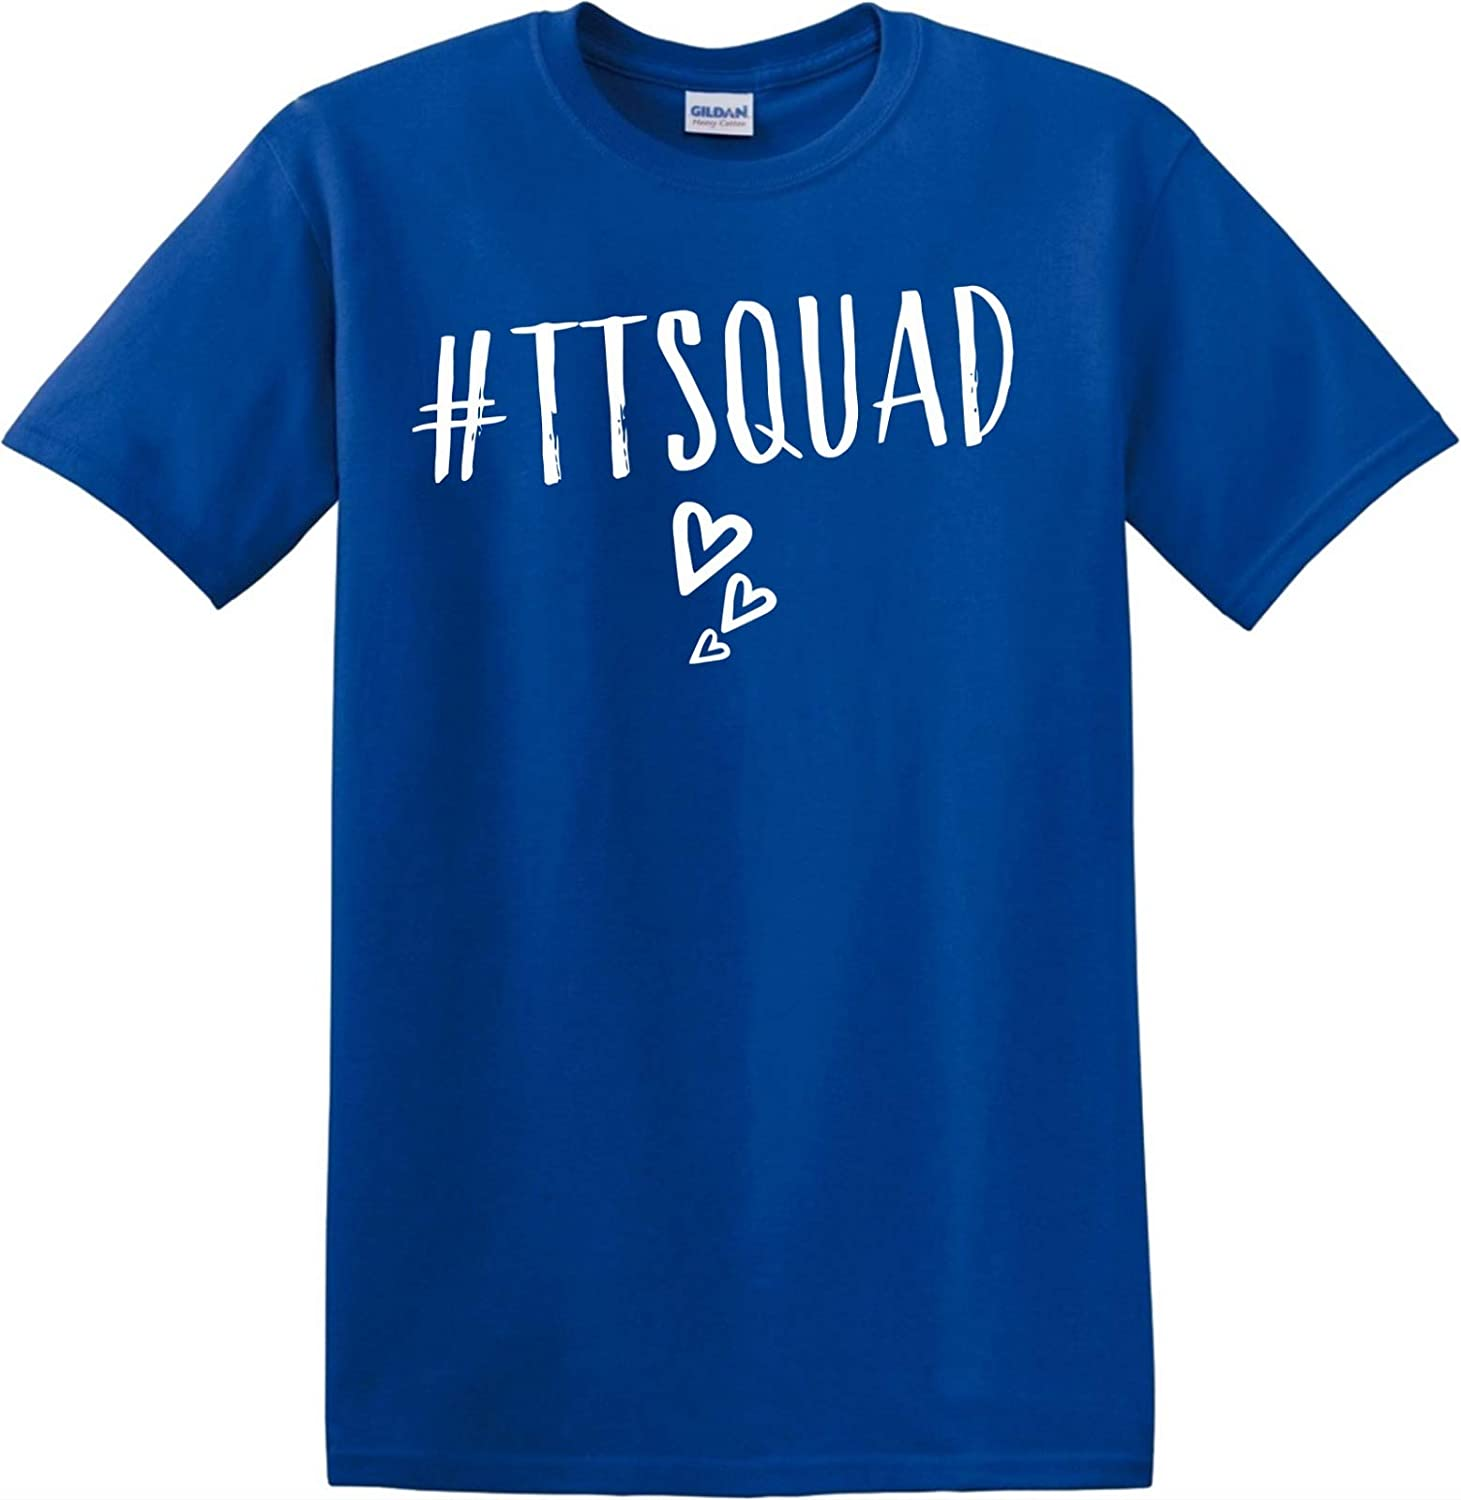 Tiana TT Squad Toys and Me Girls T Shirt Kids Girls Boys YouTube Hearts Tee Top